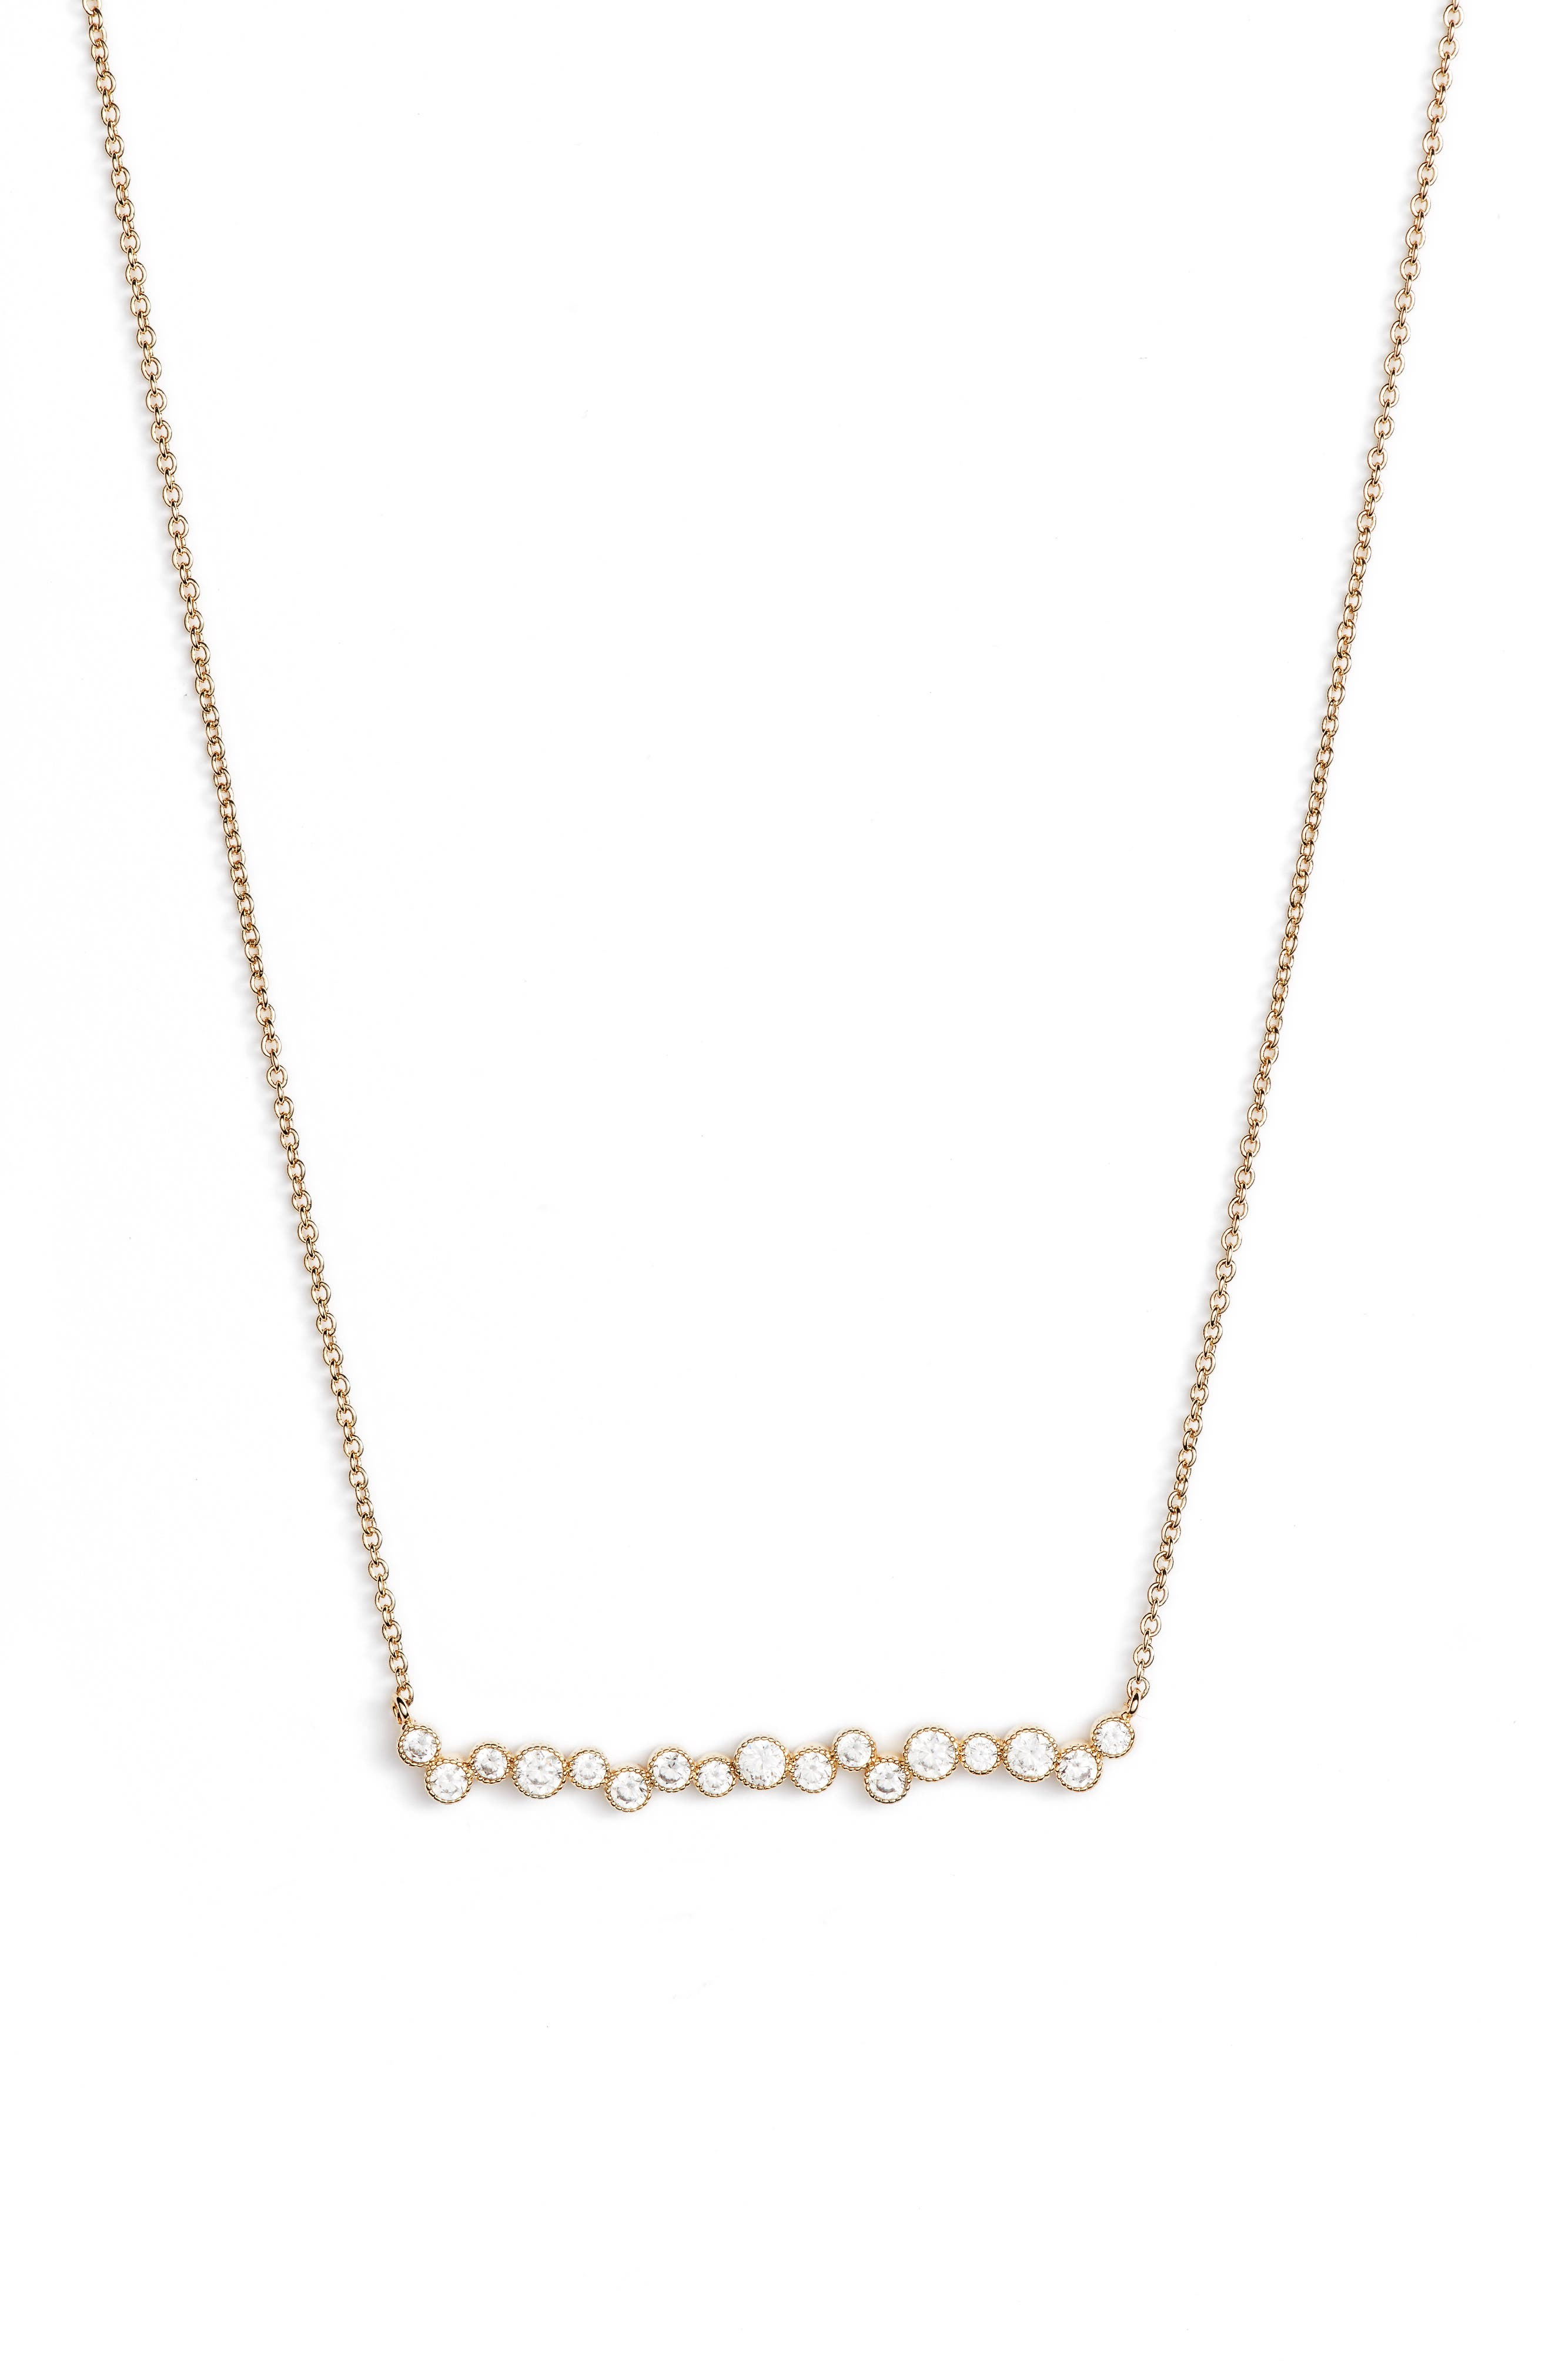 Formation Necklace,                             Main thumbnail 1, color,